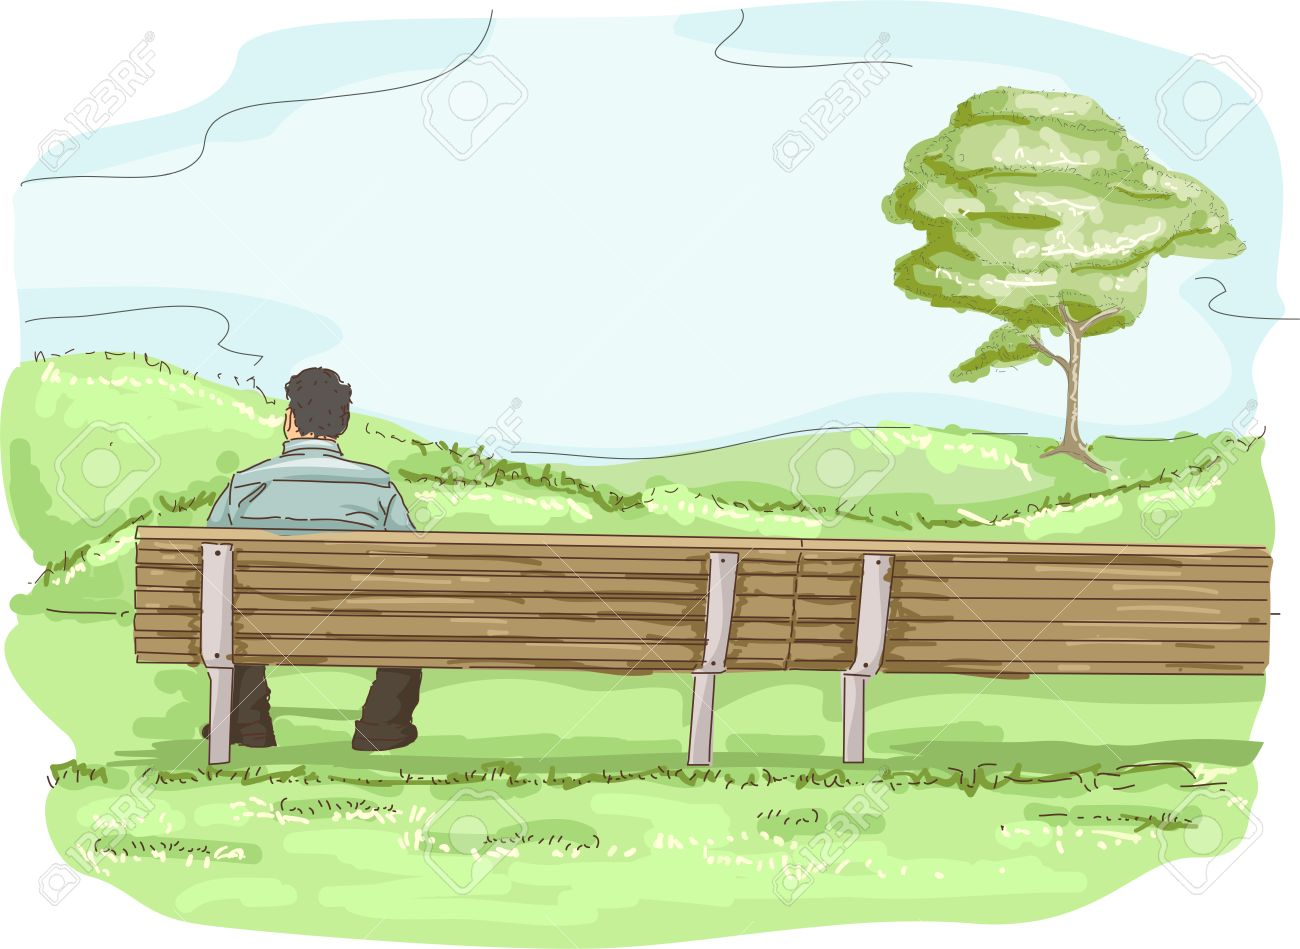 Illustration of a Man Enjoying Some Solitary Time While Sitting on a Park Bench Stock Photo - 24226814